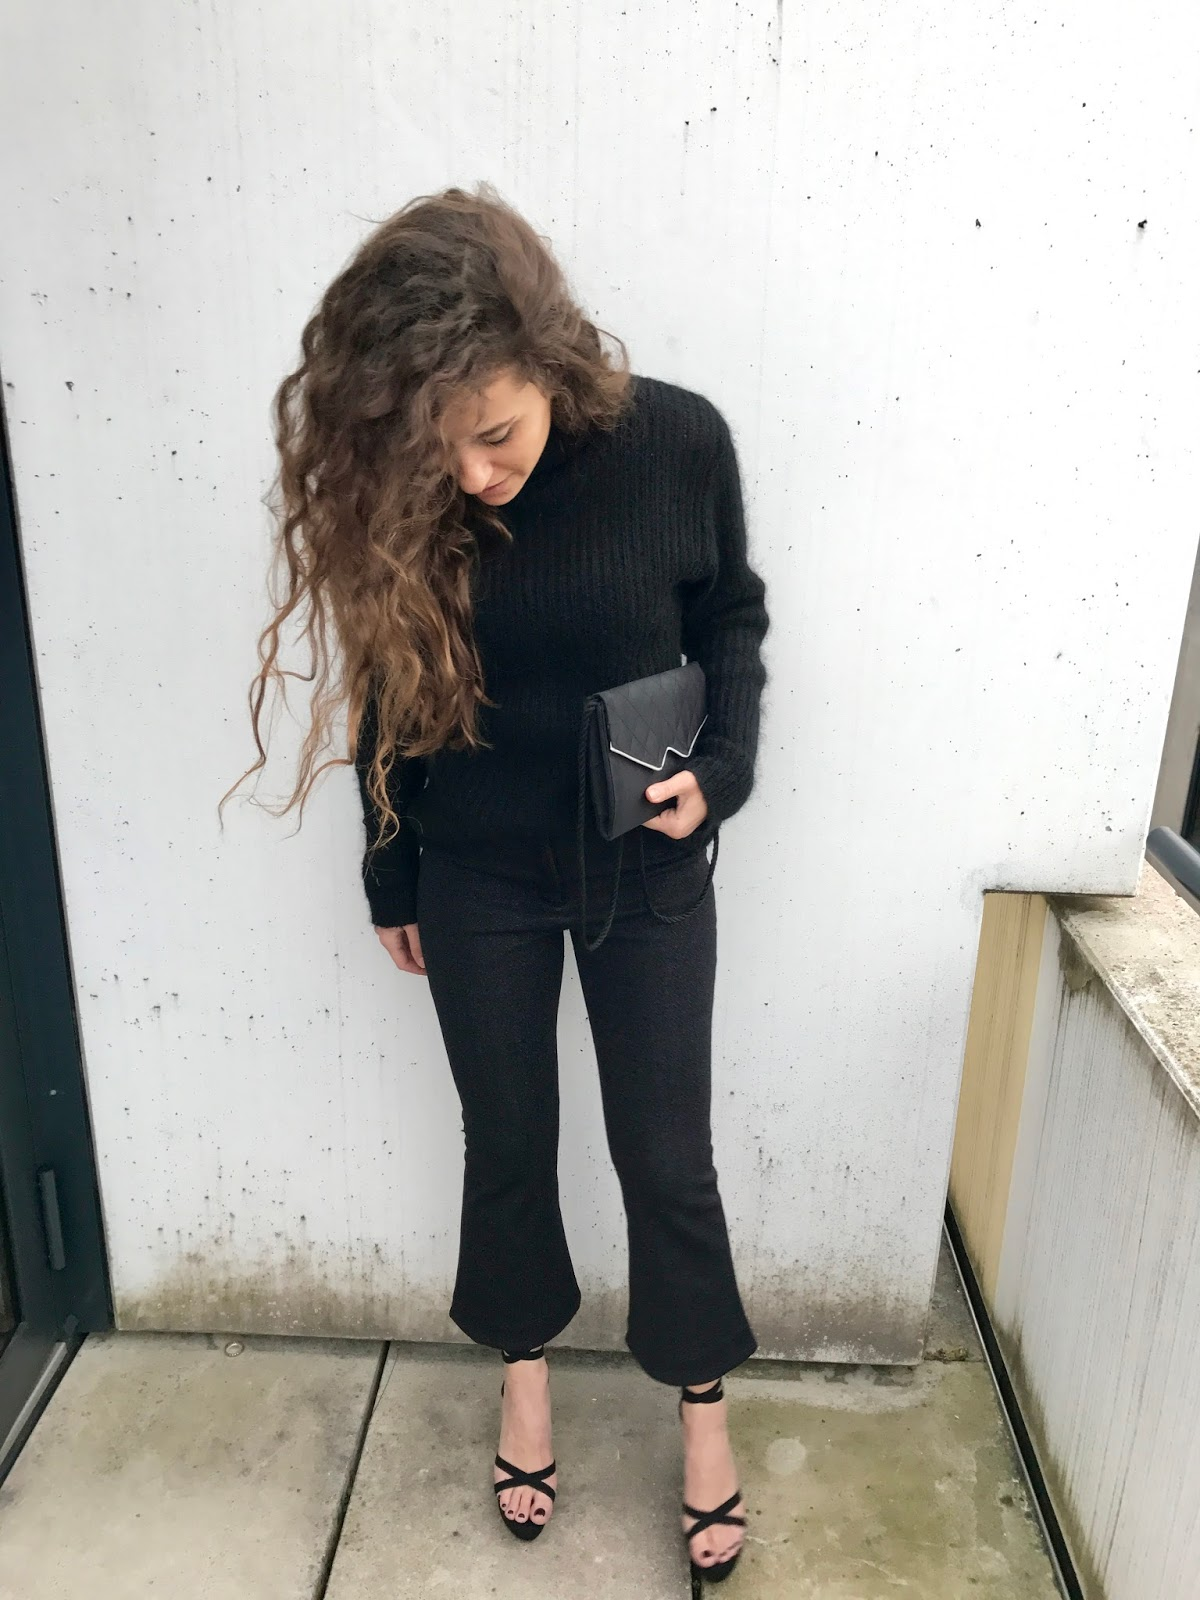 birthday outfit with glittery trousers, glitter mania, glitter trousers, glitter fashion blog, fashion need, fashion blog Italia, Valentina Rago, Valentina Rago fashion need, fashion blogger outfits